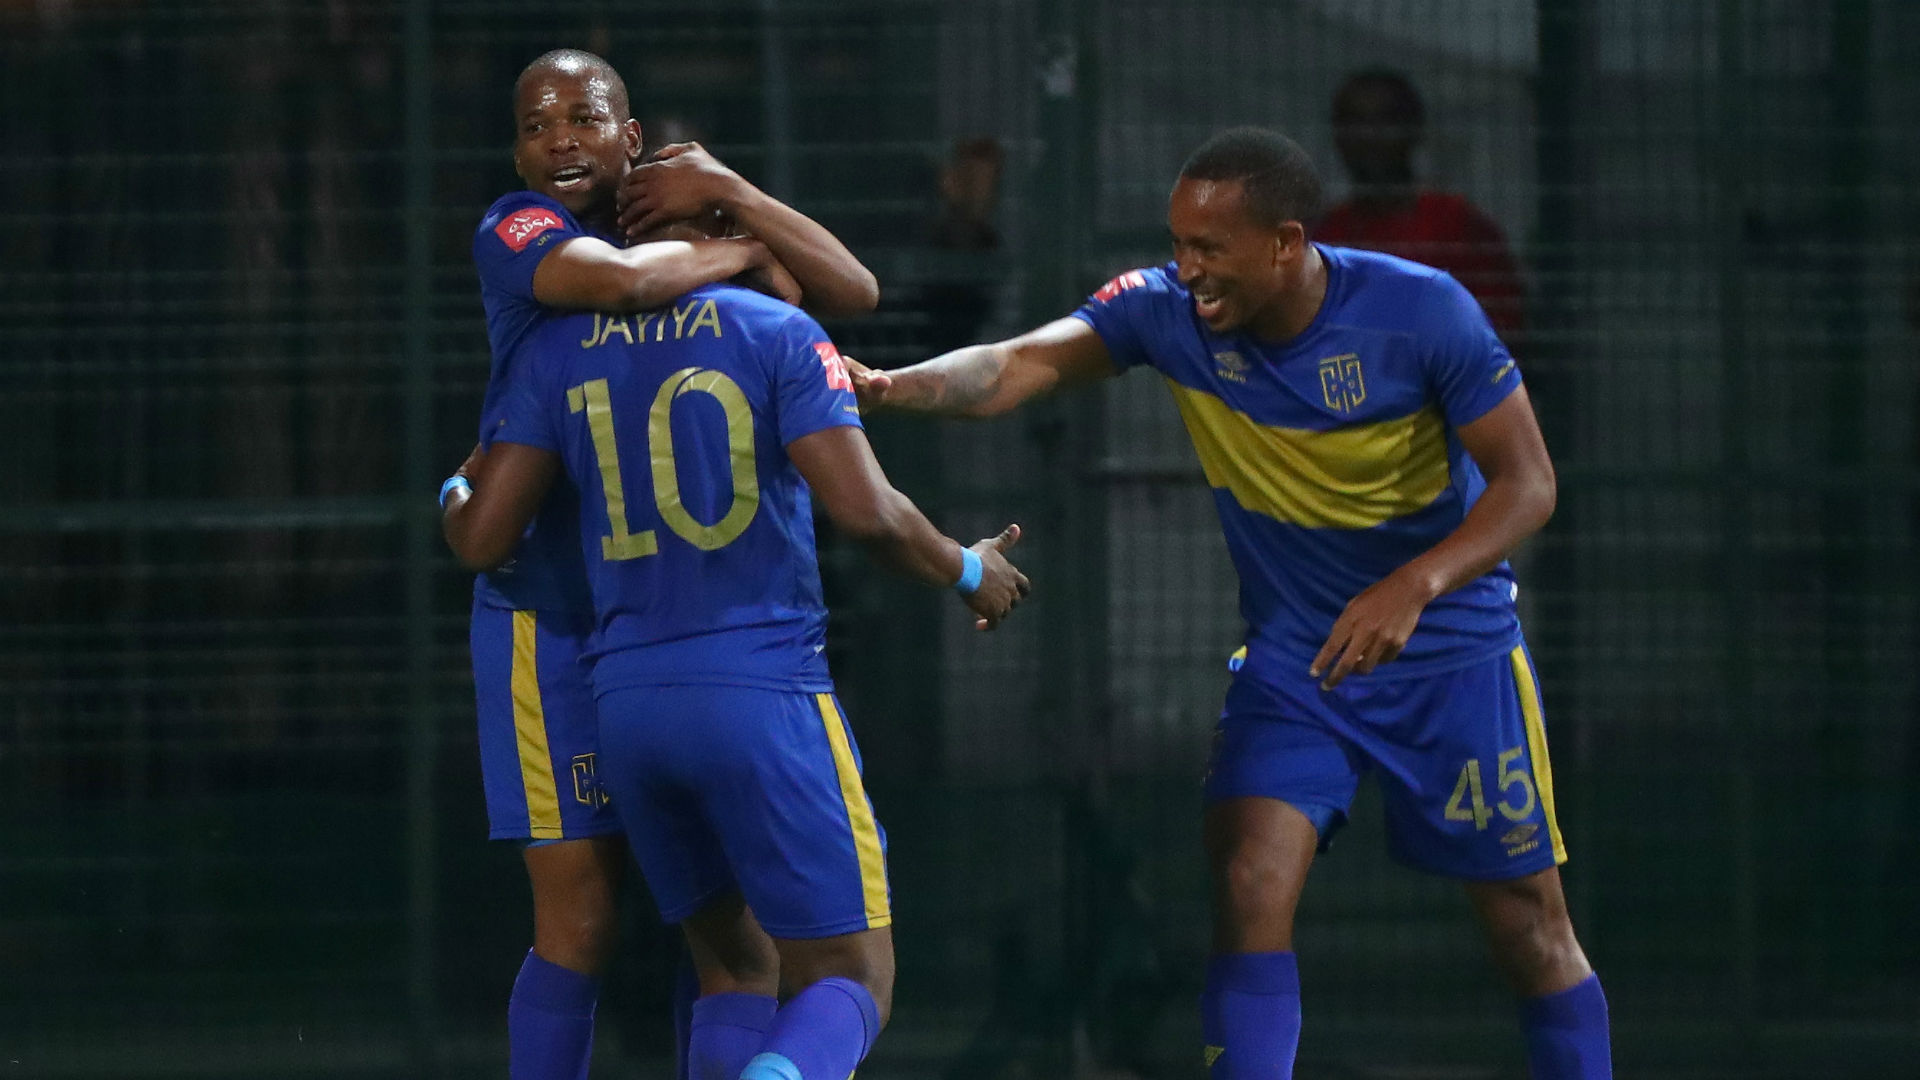 Cape Town City Vs Polokwane City News: FEATURE: Predicting The Remaining PSL Title Race Games